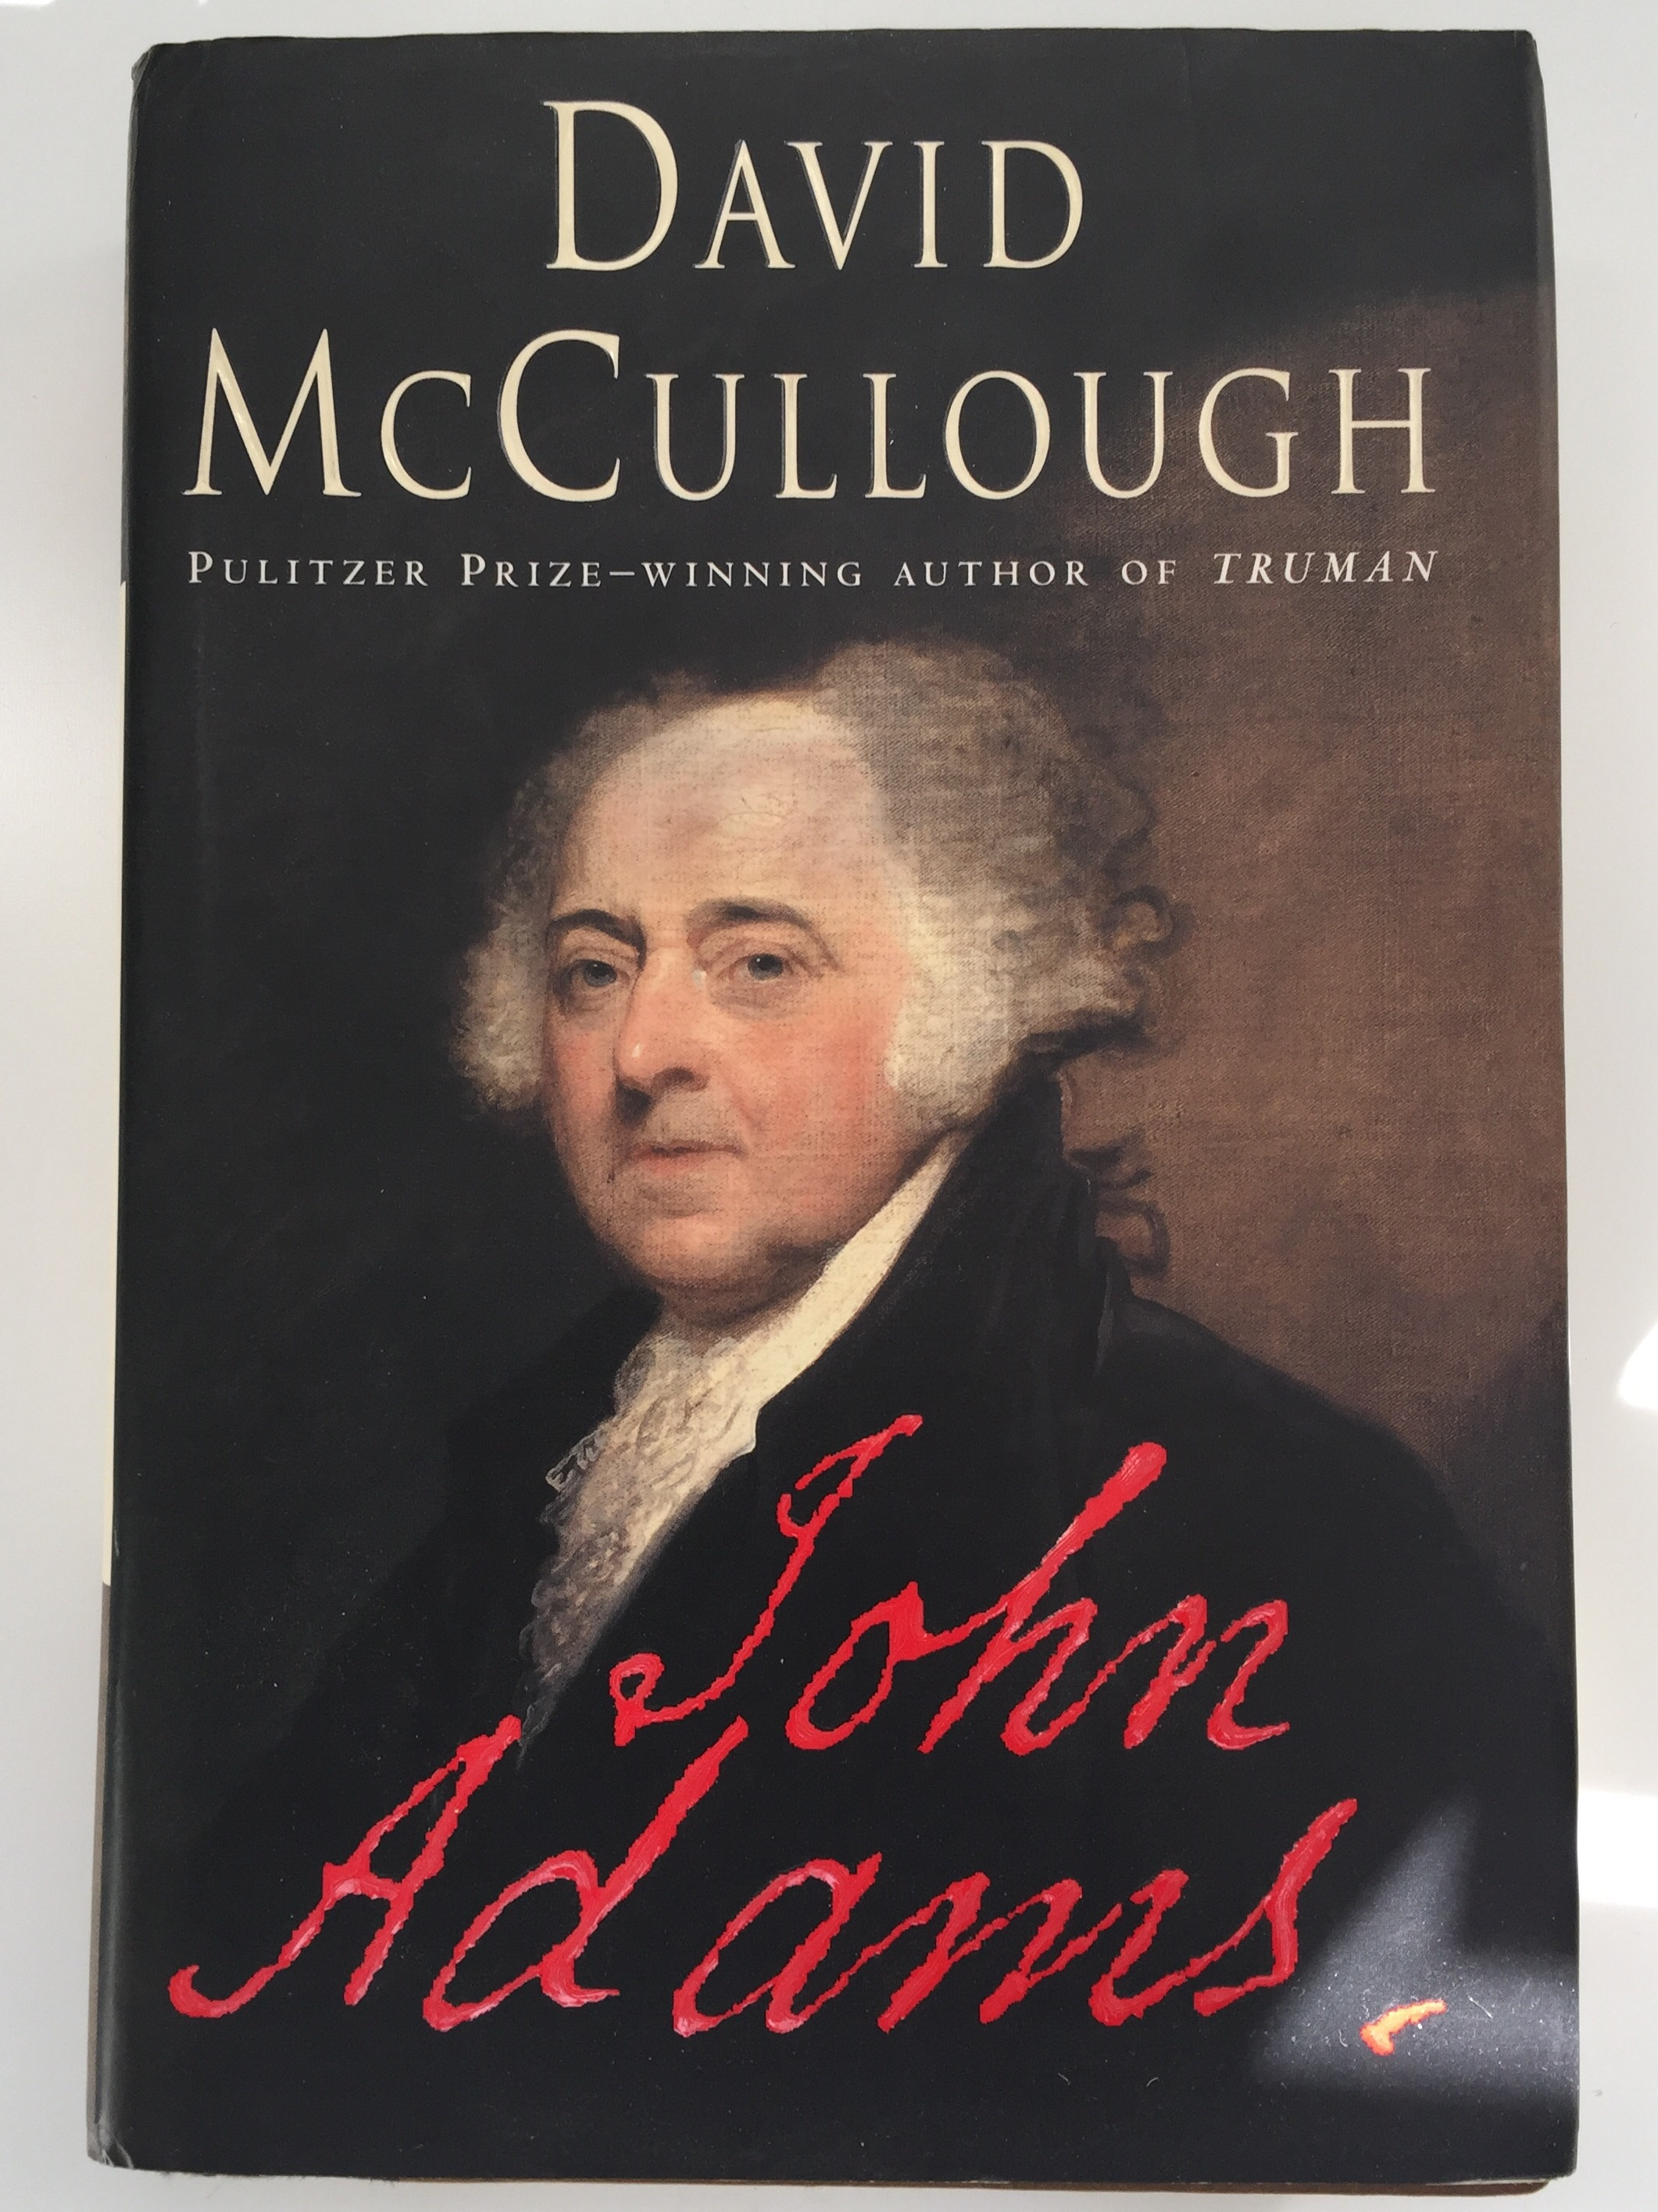 john adams by david mccullough thesis John adams 1765 dissertation thesis leslie pack history genealogy for john adams david mccullough essay on the canon and thomas jefferson essay writing your.